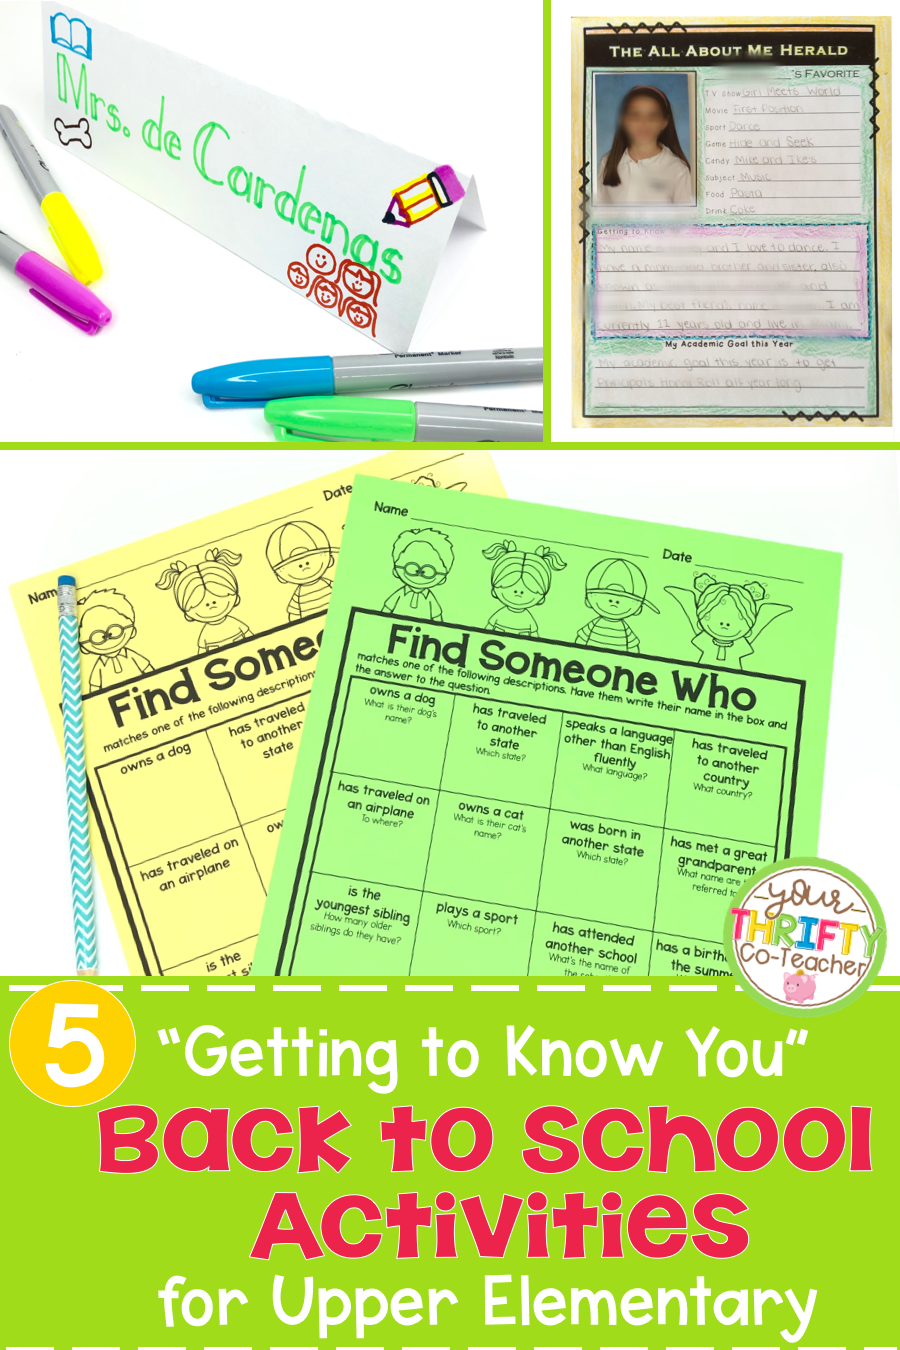 Back to School Activities - Your Thrifty Co-Teacher